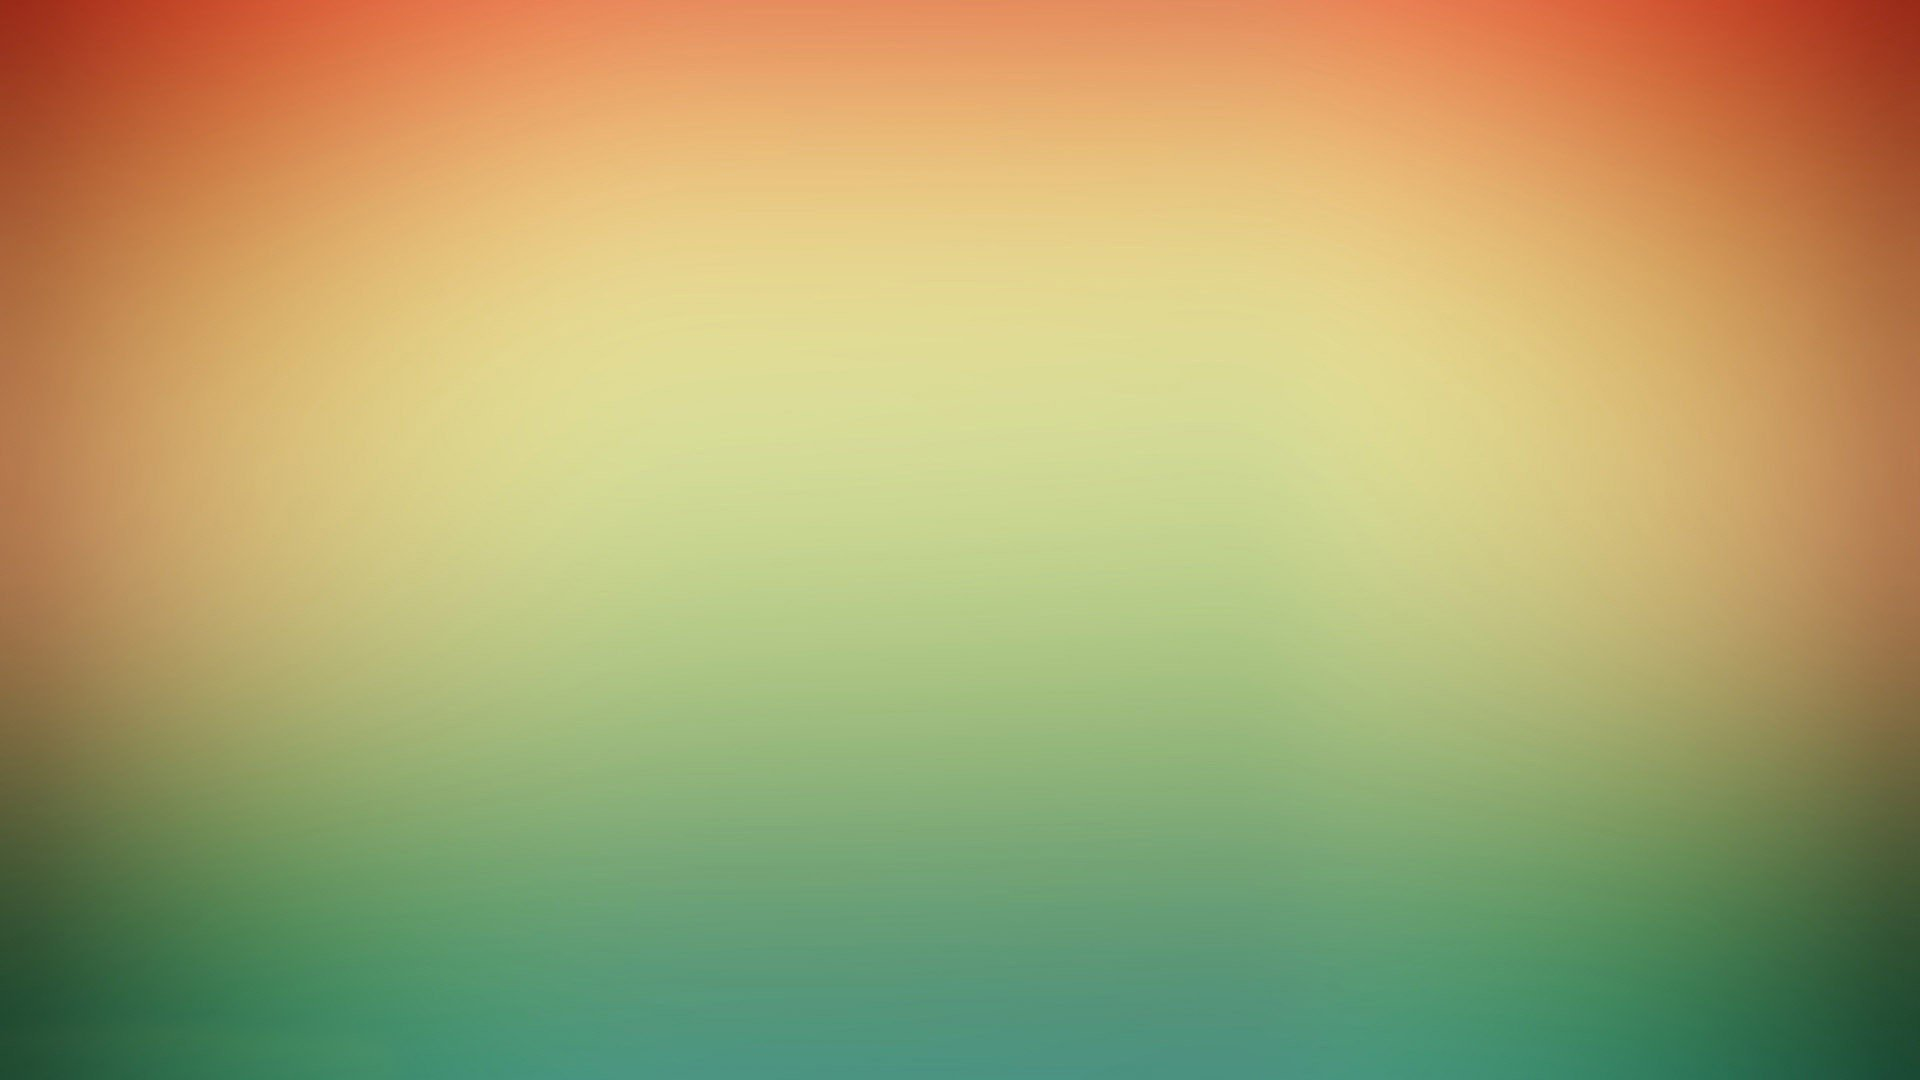 Green and orange gradient wallpaper 9814 1920x1080